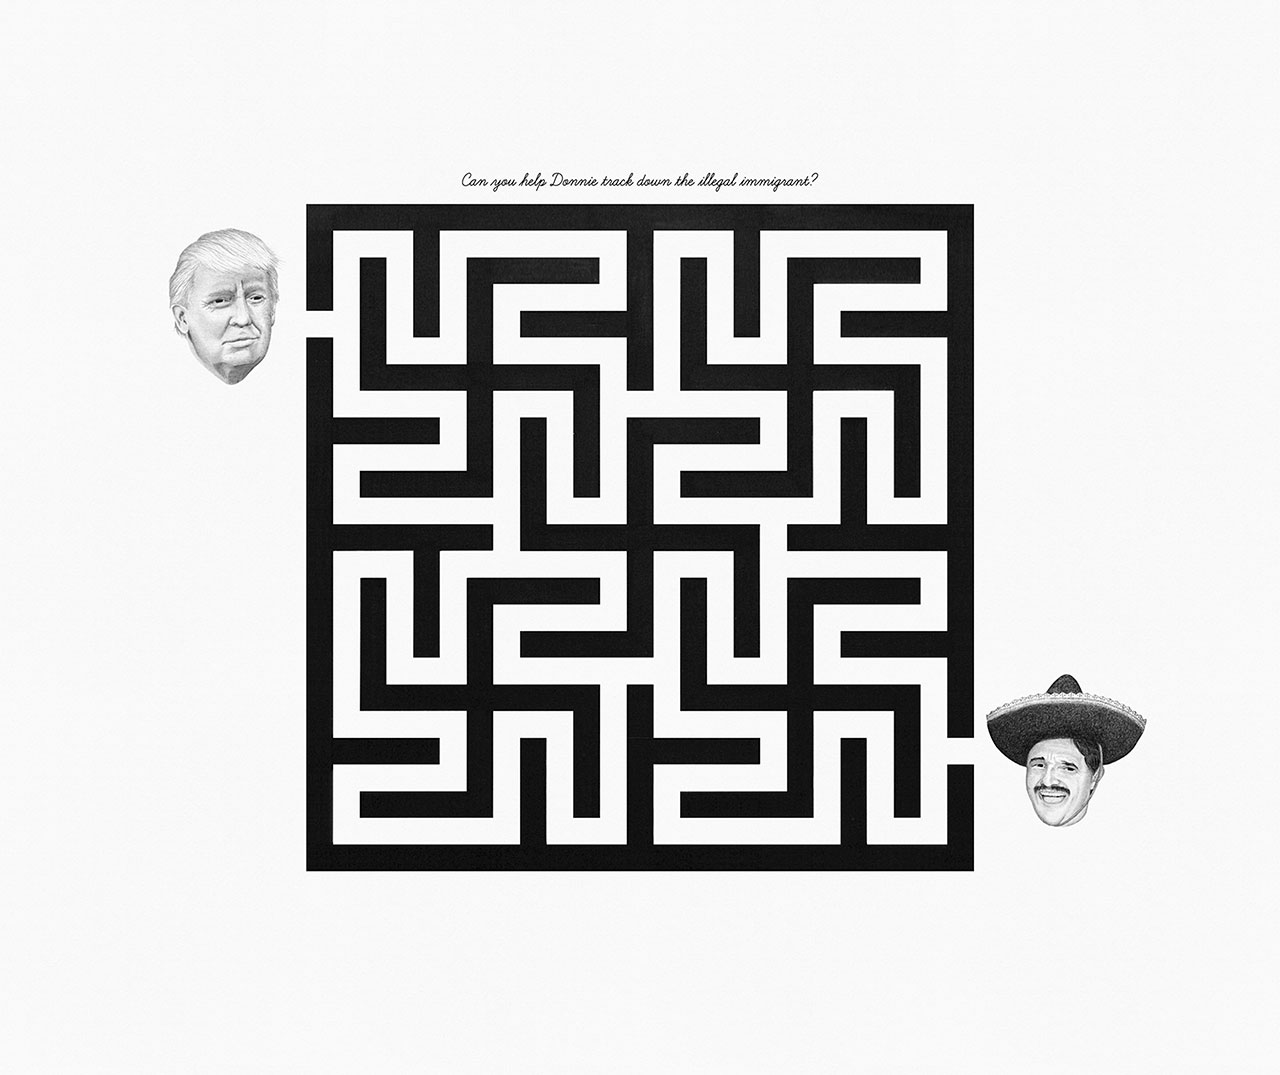 William Fort, A-MAZE-ING (Can you help Donnie track down the illegal immigrant?), Pen & pencil on paper 60 x 70 cm. © William Fort.